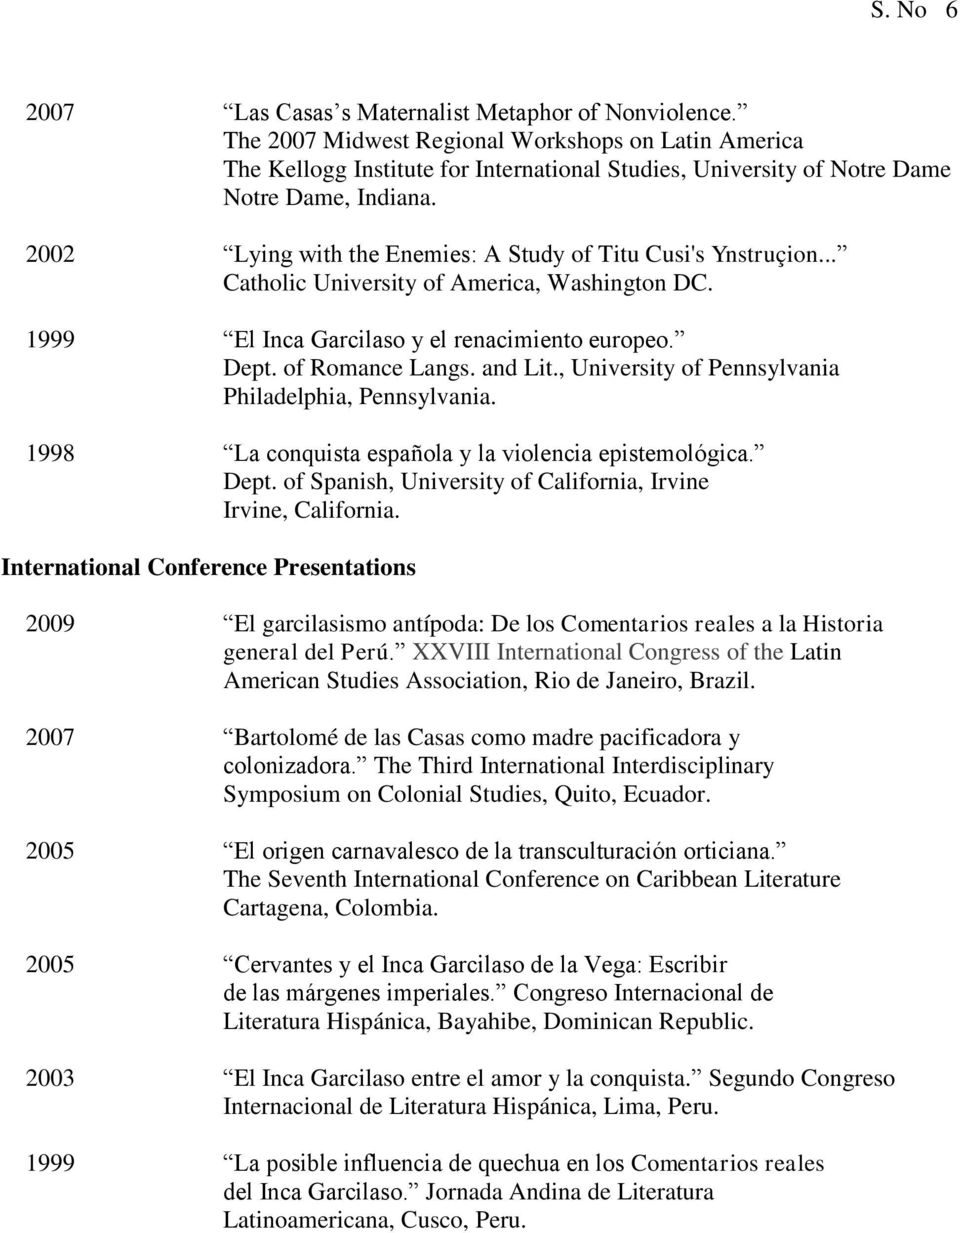 2002 Lying with the Enemies: A Study of Titu Cusi's Ynstruçion... Catholic University of America, Washington DC. 1999 El Inca Garcilaso y el renacimiento europeo. Dept. of Romance Langs. and Lit.